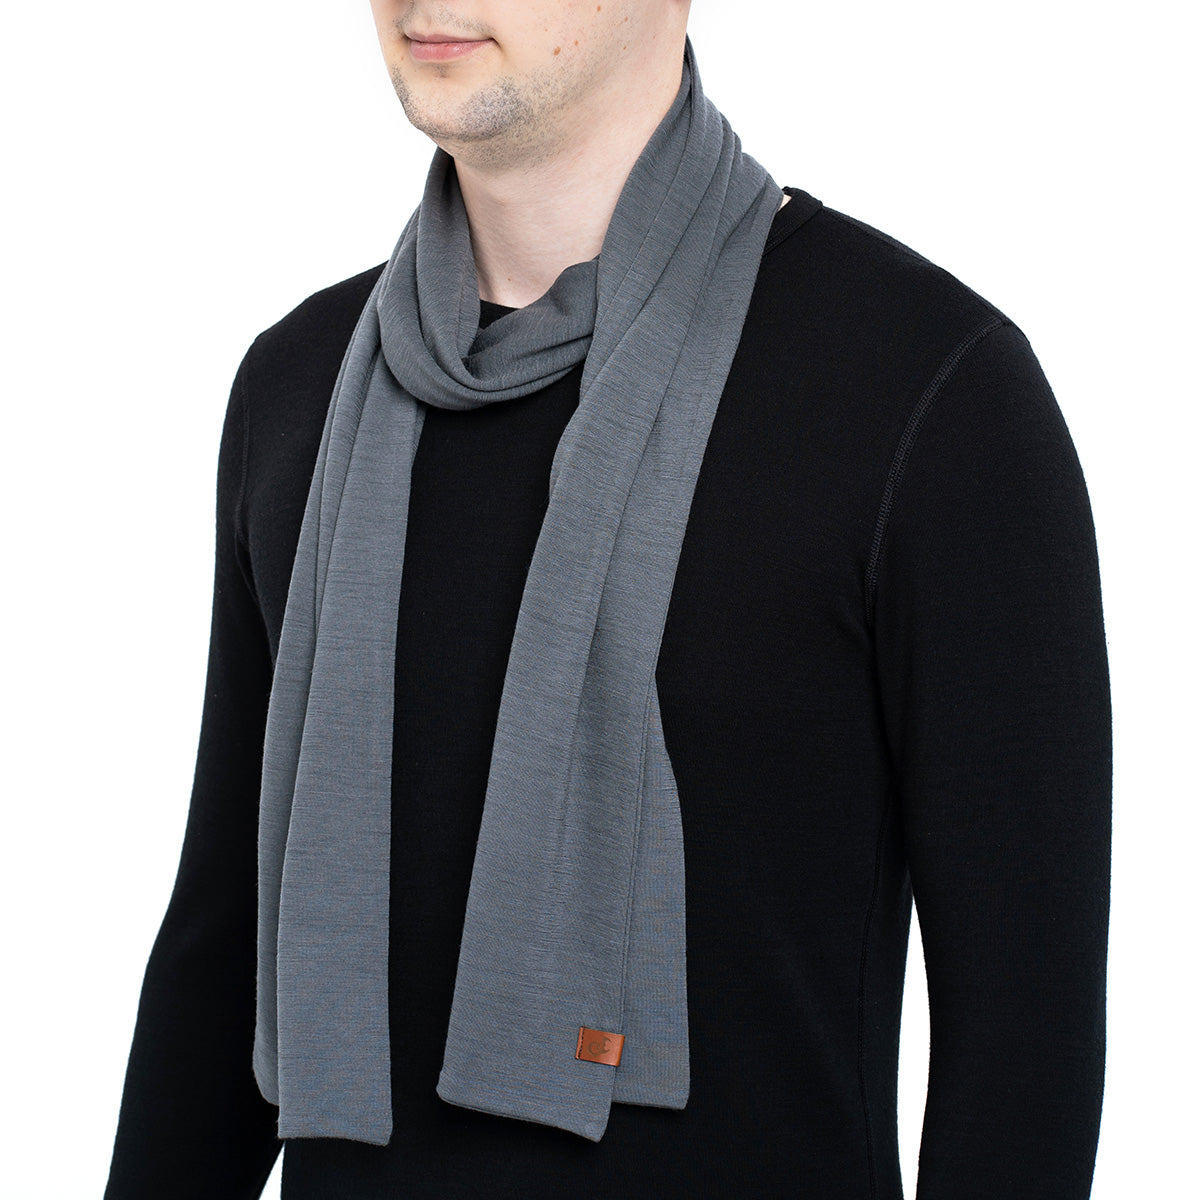 menique Men's Merino Scarf Perfect Grey Color